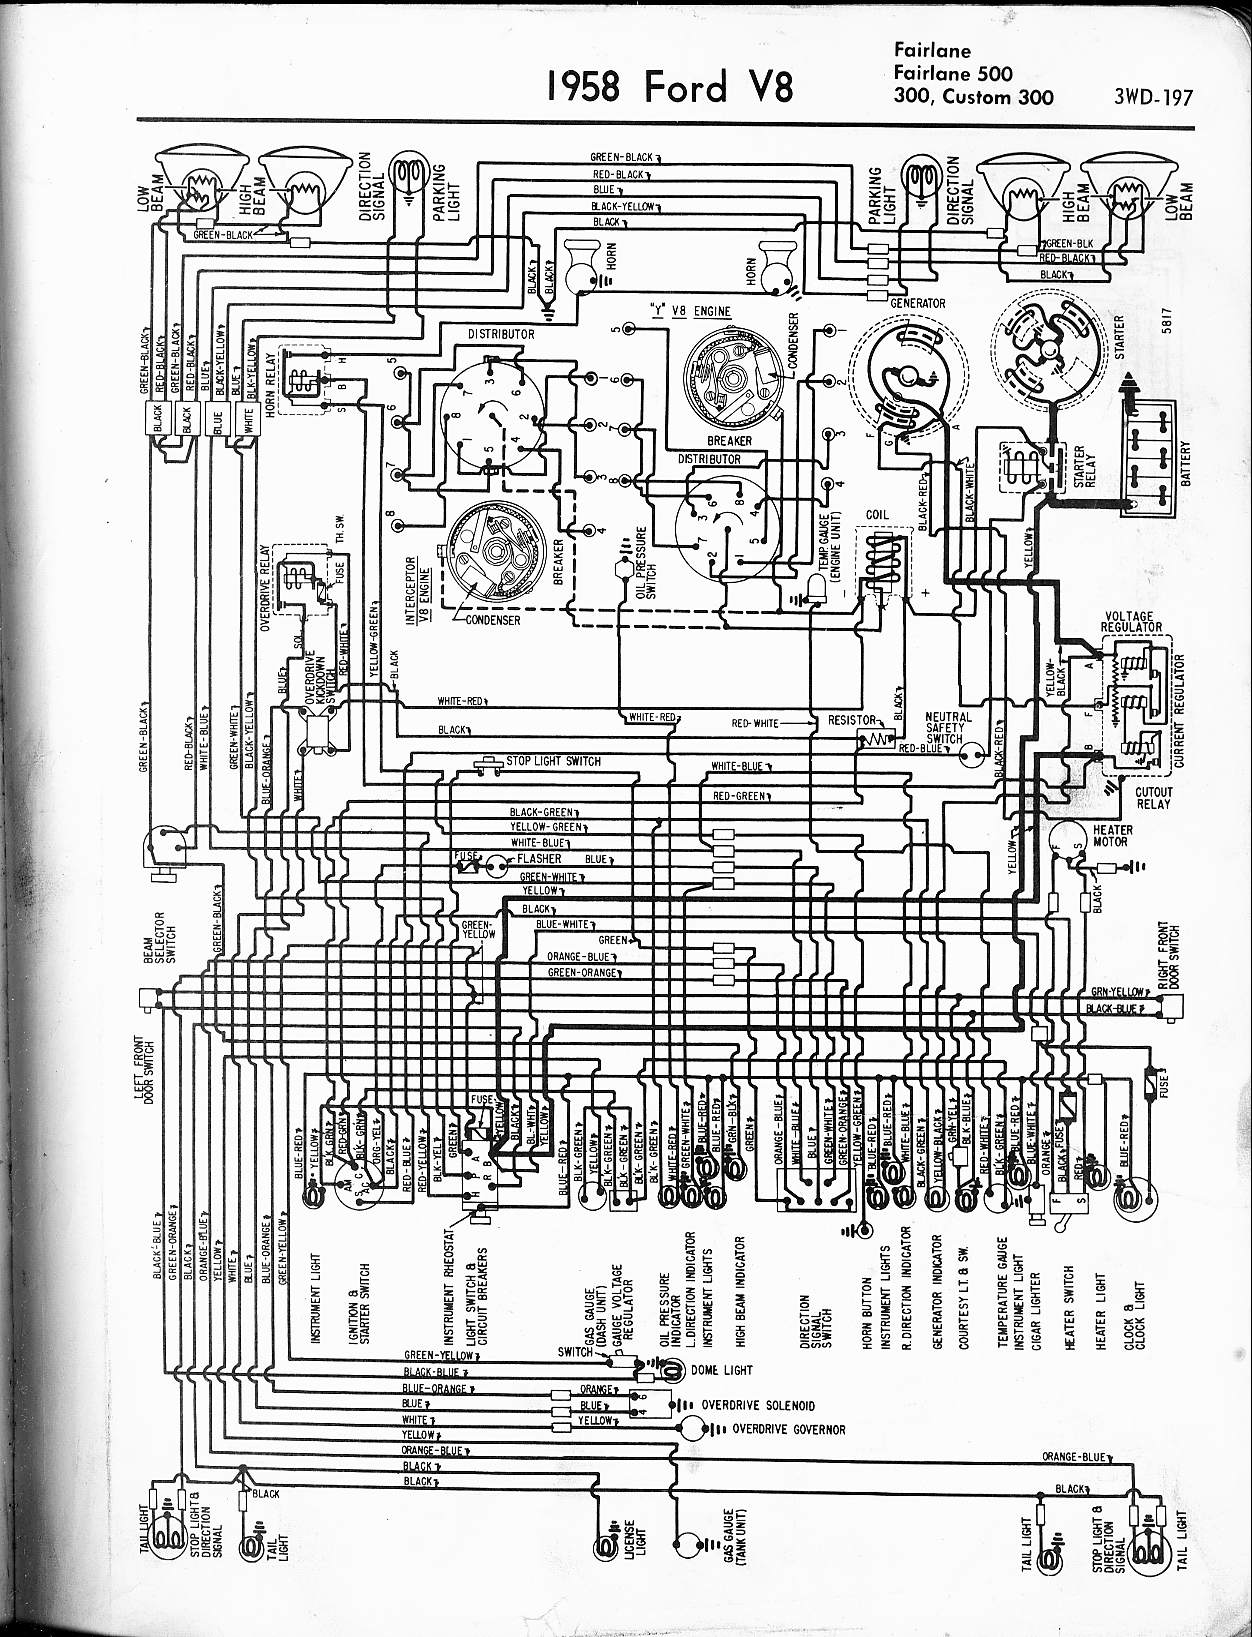 ford wiring diagrams wiring diagram data 59 Ford Truck Interior 57 65 ford wiring diagrams ford headlight switch wiring diagram 1958 v8 fairlane, 500,